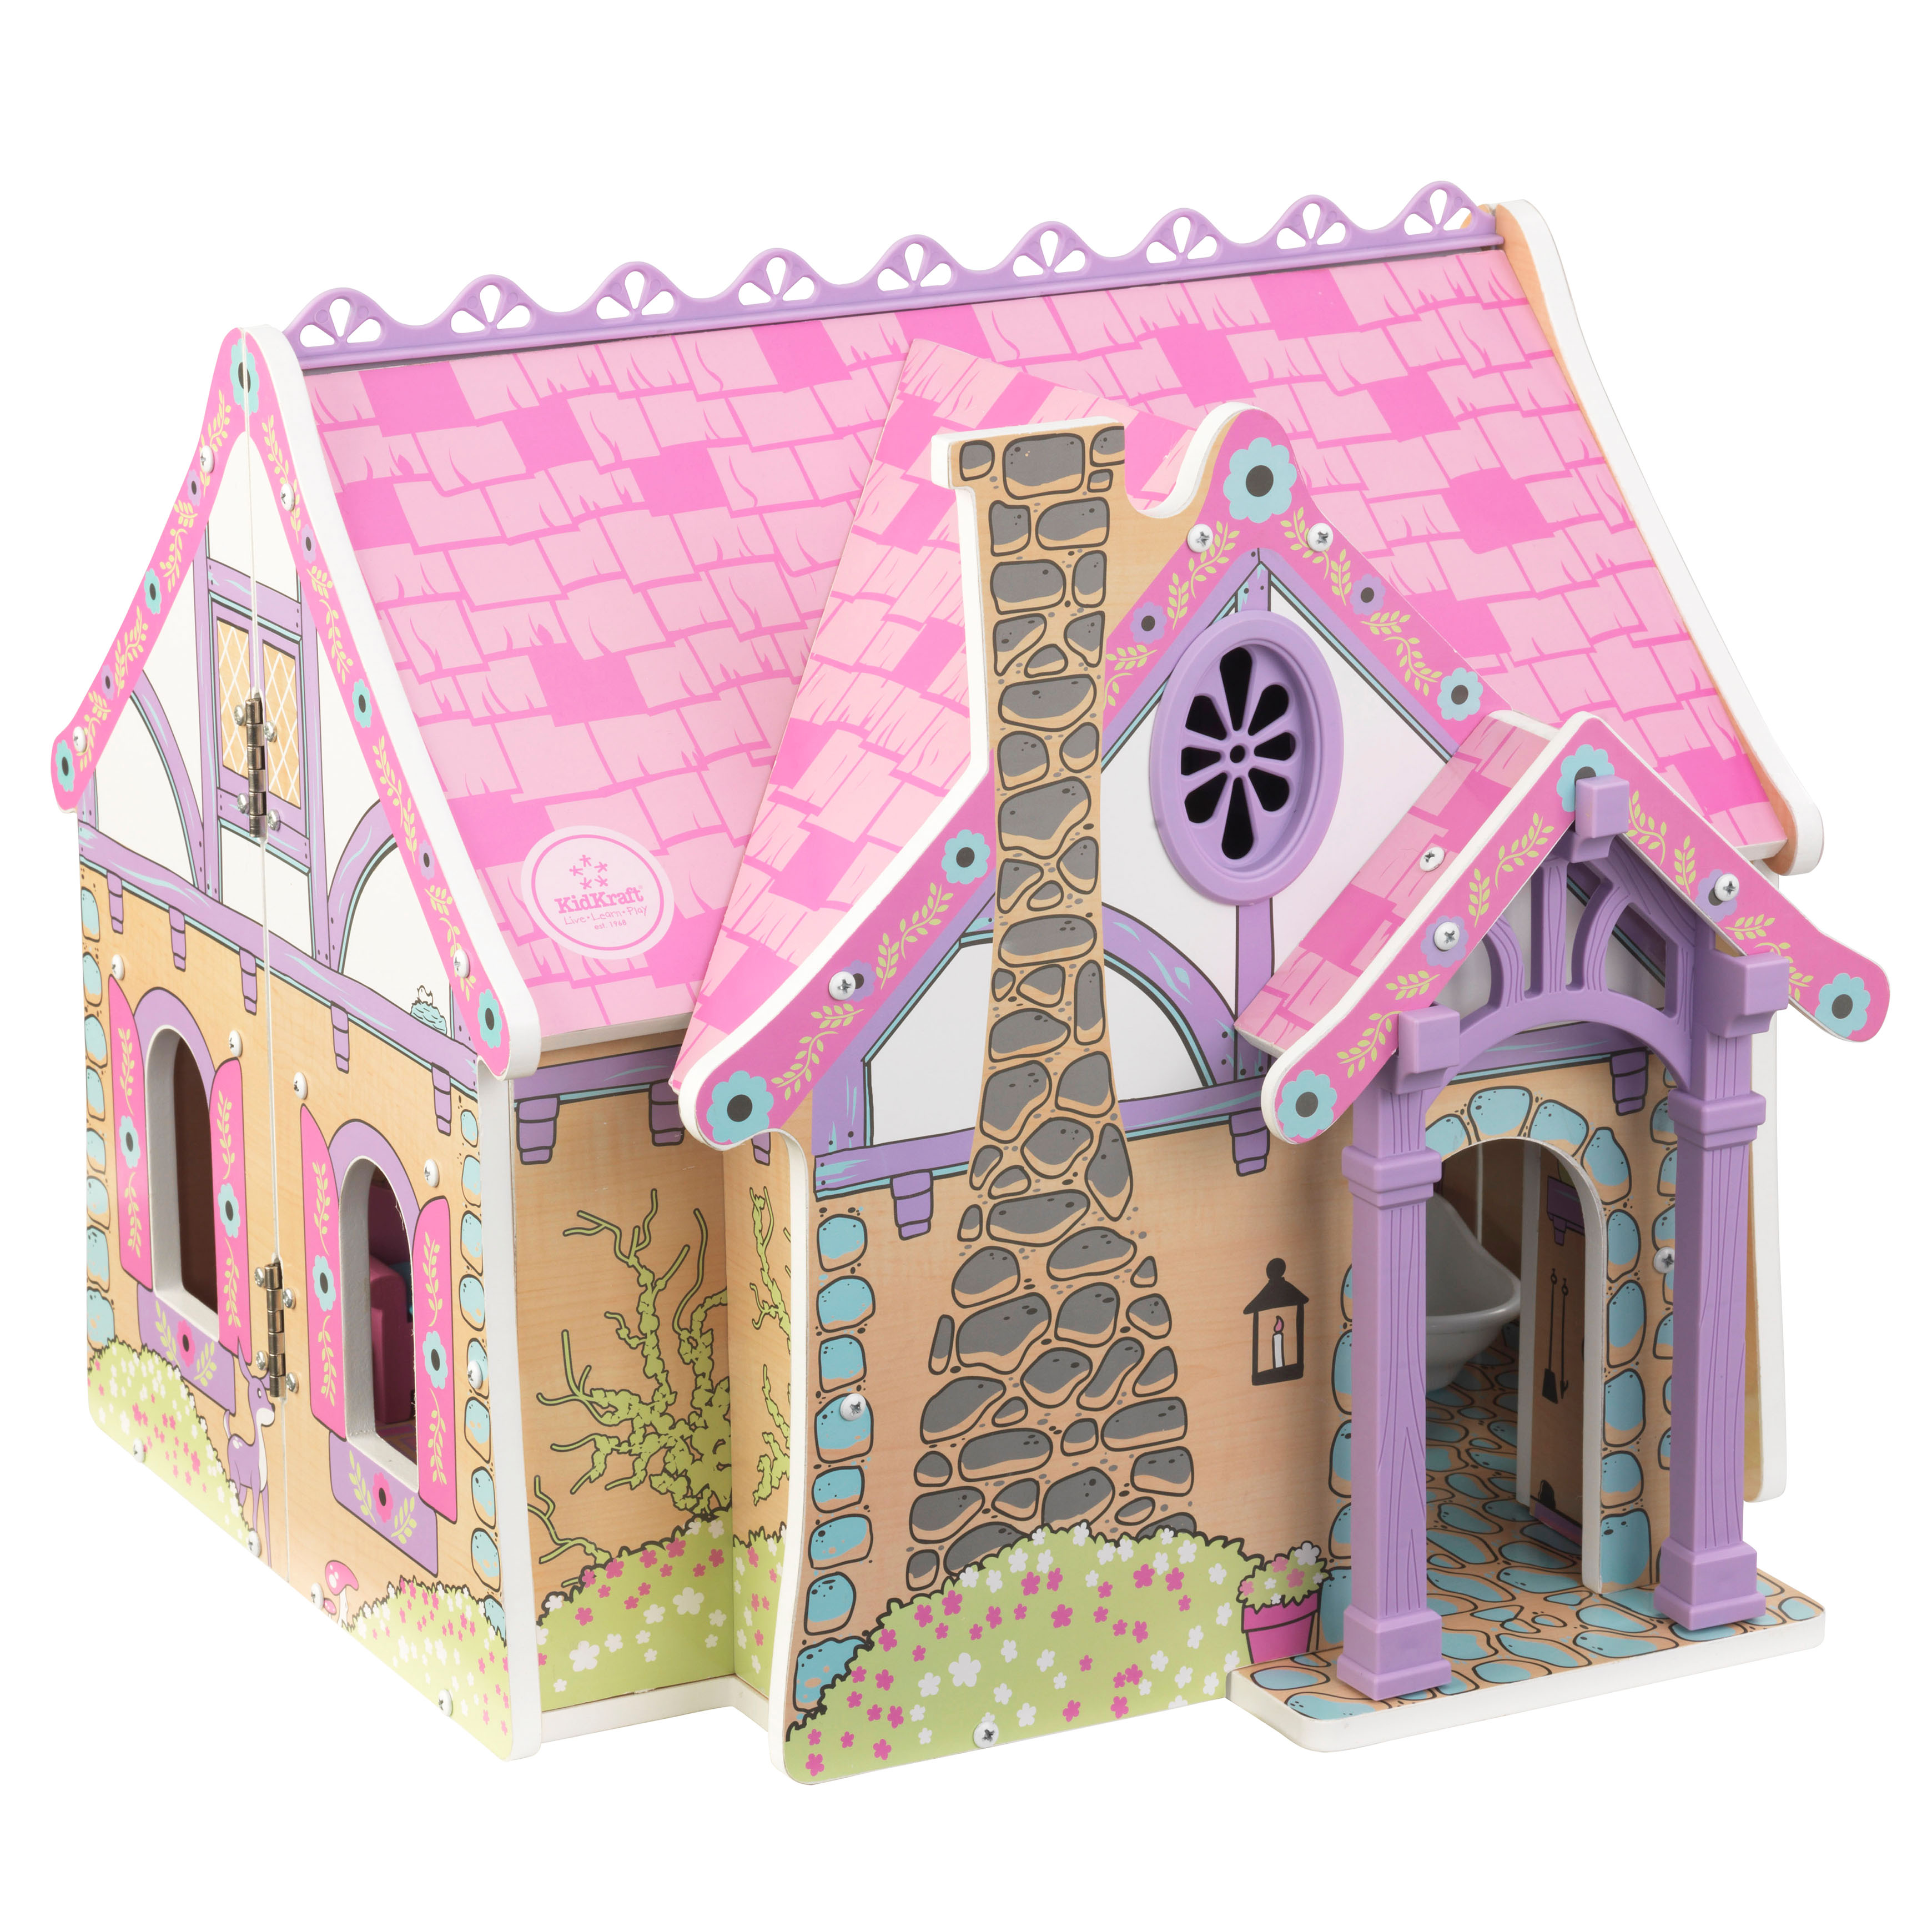 KidKraft Wooden Enchanted Forest Dollhouse with 16-Piece Accessories for 5-Inch Dolls, Opens and Closes